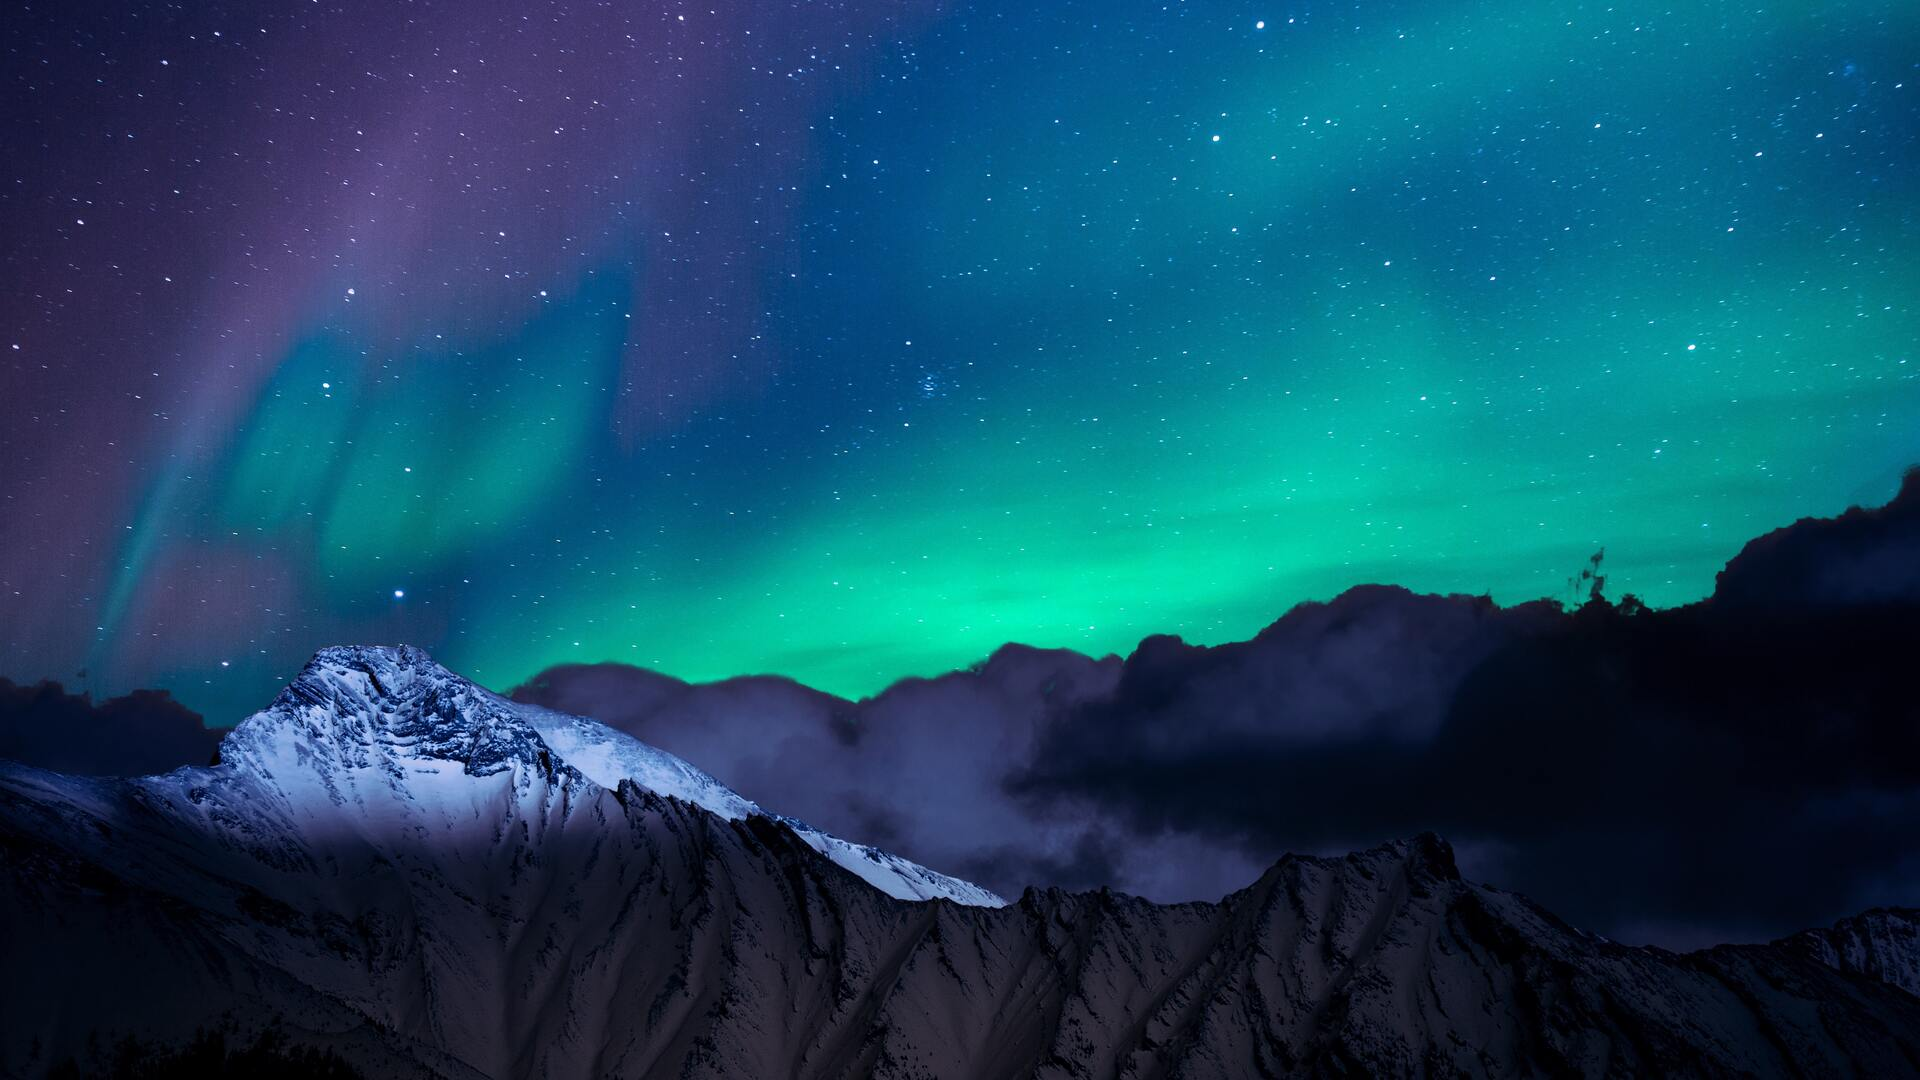 northern lights night sky mountains landscape 4k k8